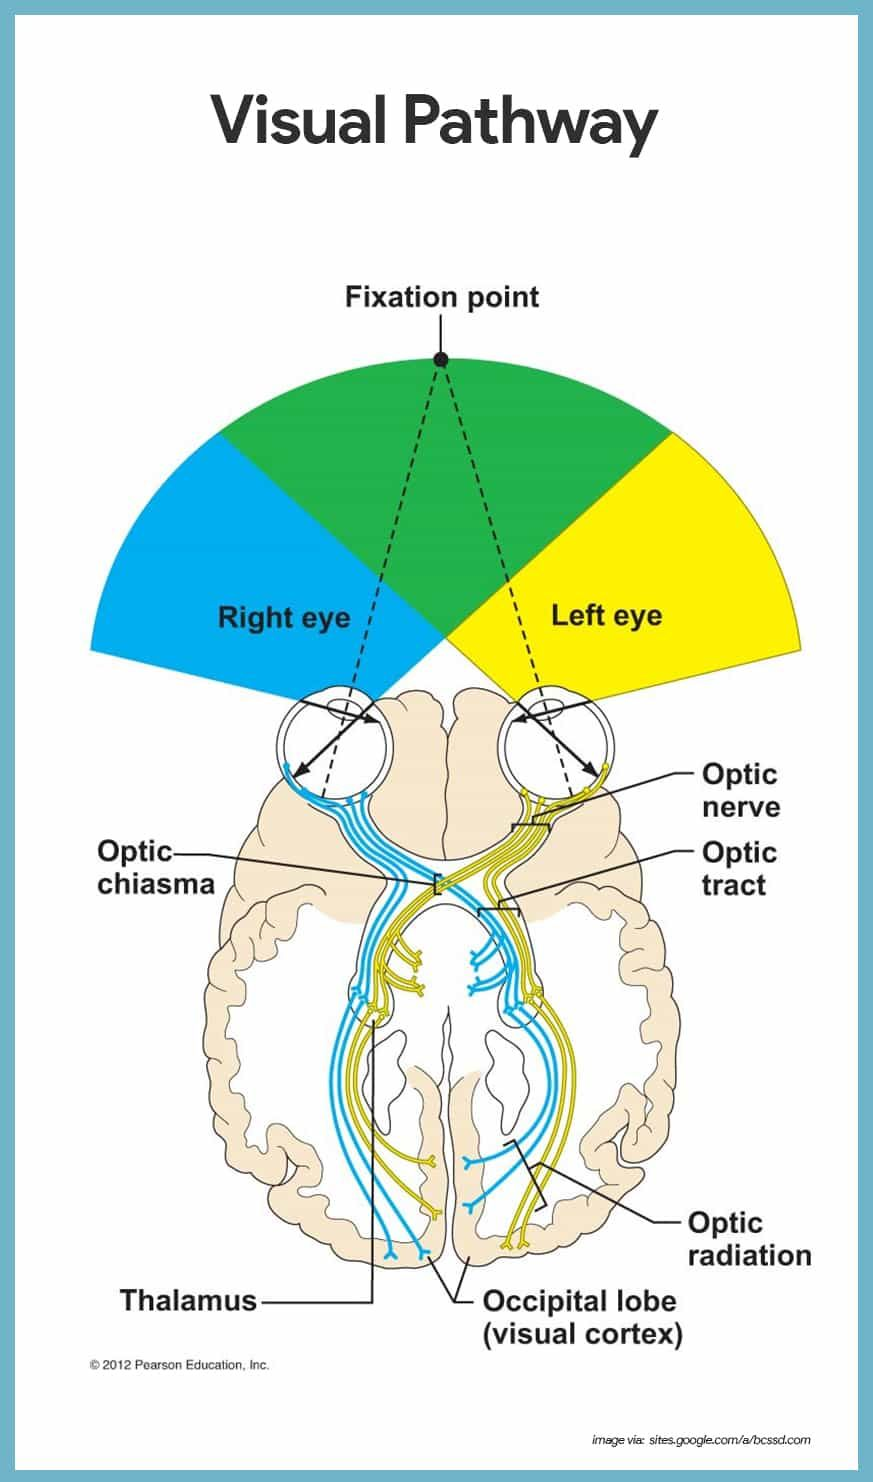 Special Senses Anatomy and Physiology | Anatomy, Med school and ...